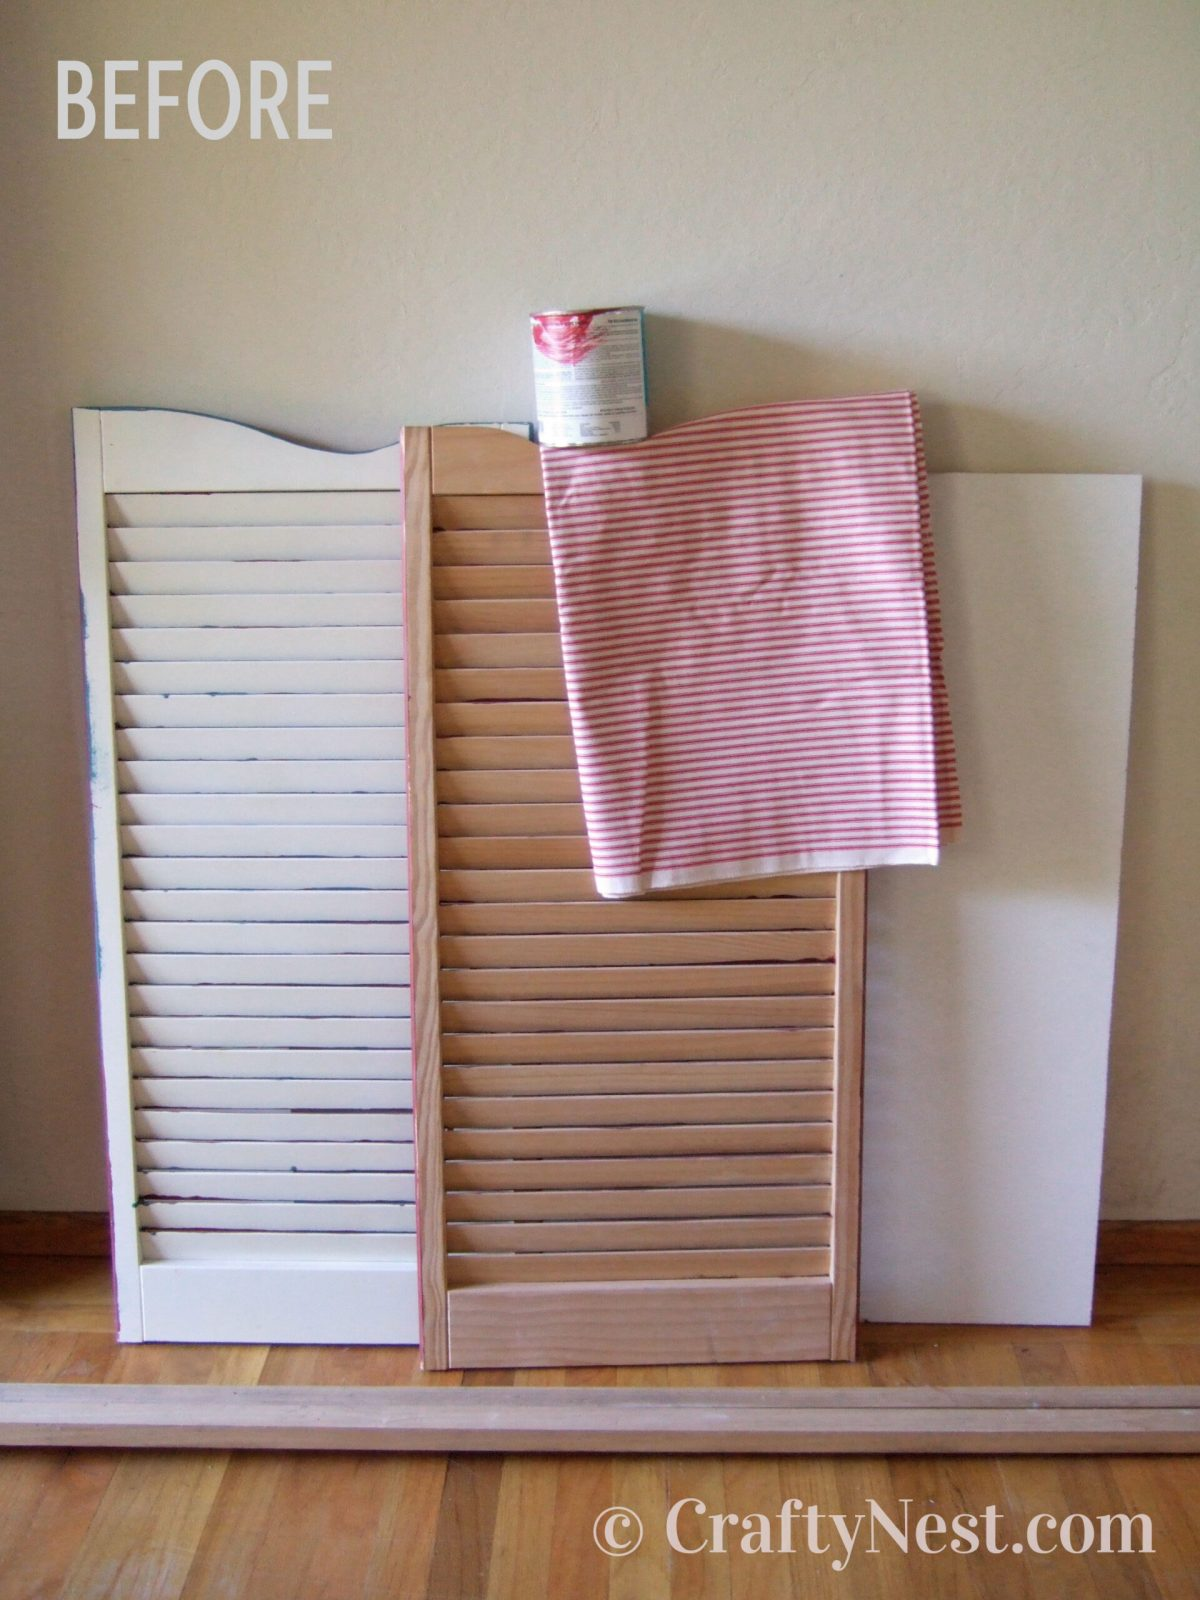 Shutters and supplies to make the bulletin board, photo